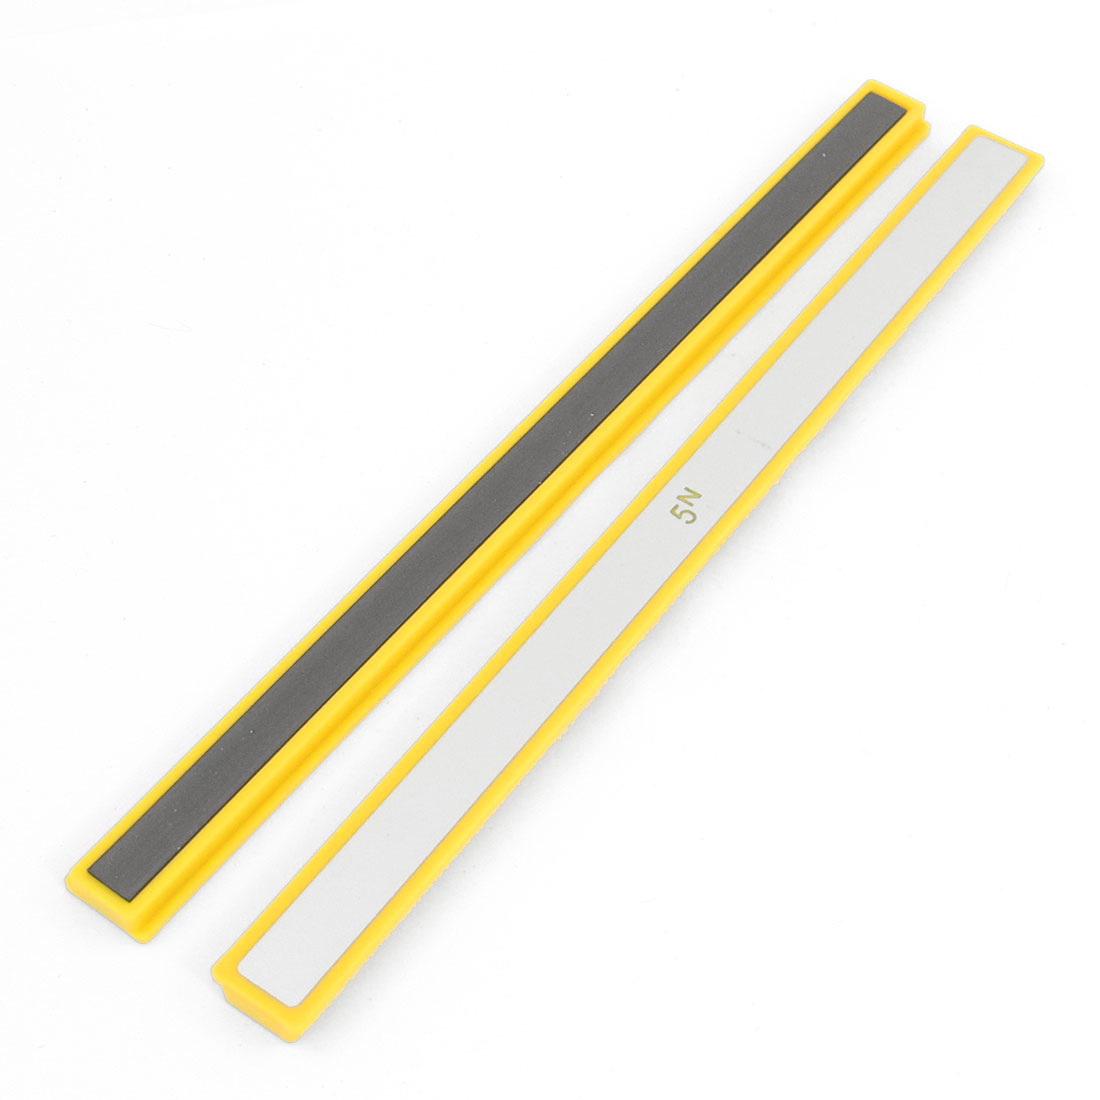 "2pcs Whiteboard 7.8"" Long Magnetic Stripes Fixed File Tool Yellow"